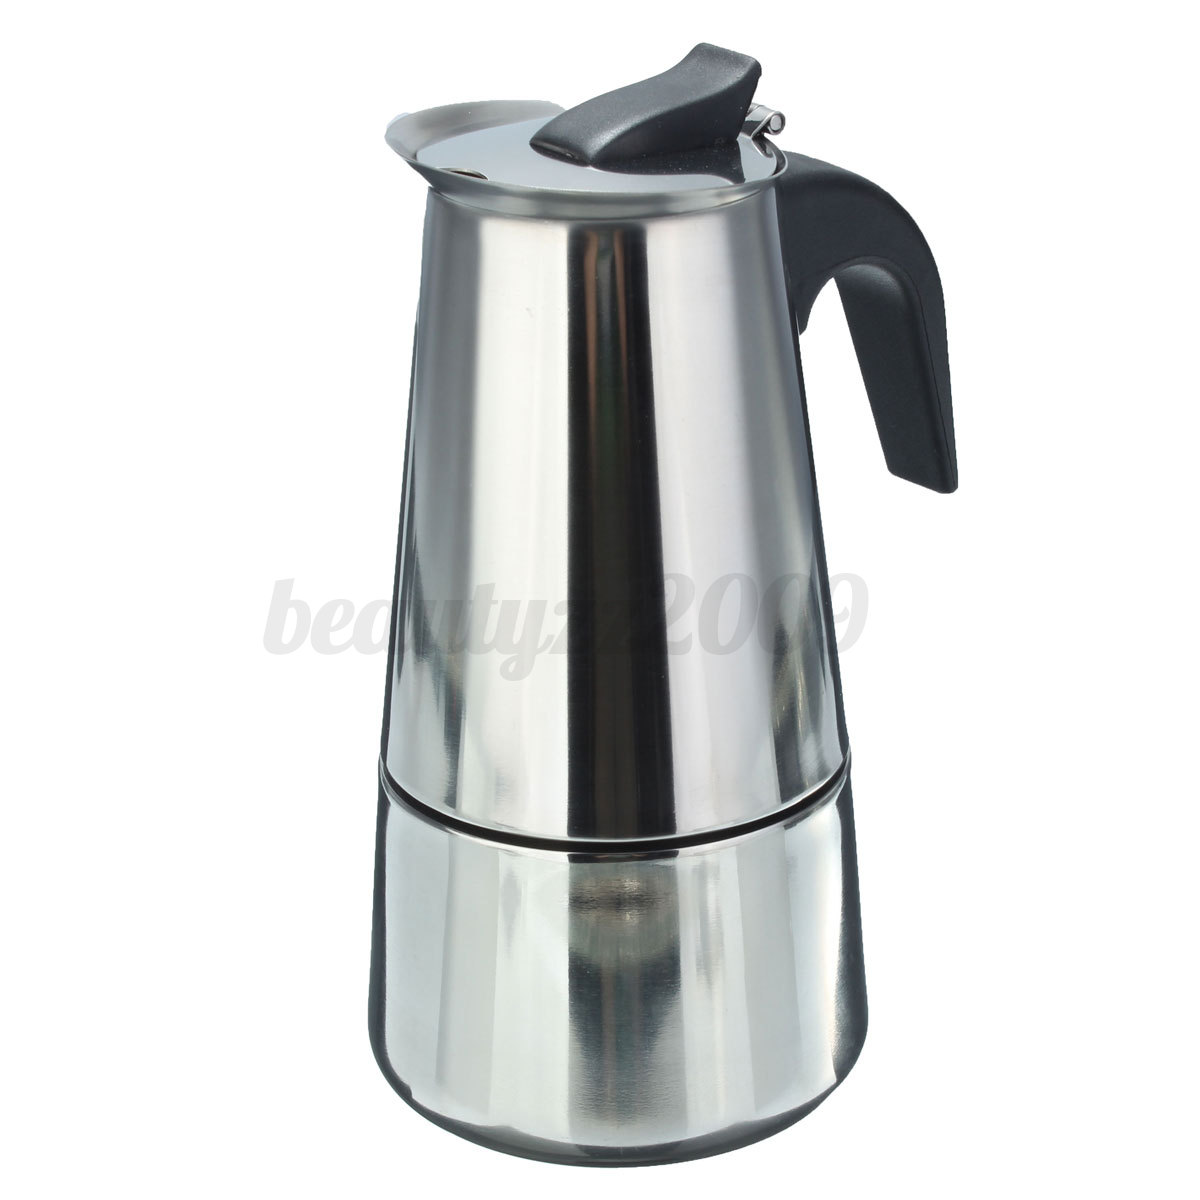 100 300ml Espresso Stove TOP Coffee Maker Continental Percolator POT 2 6 Cups eBay